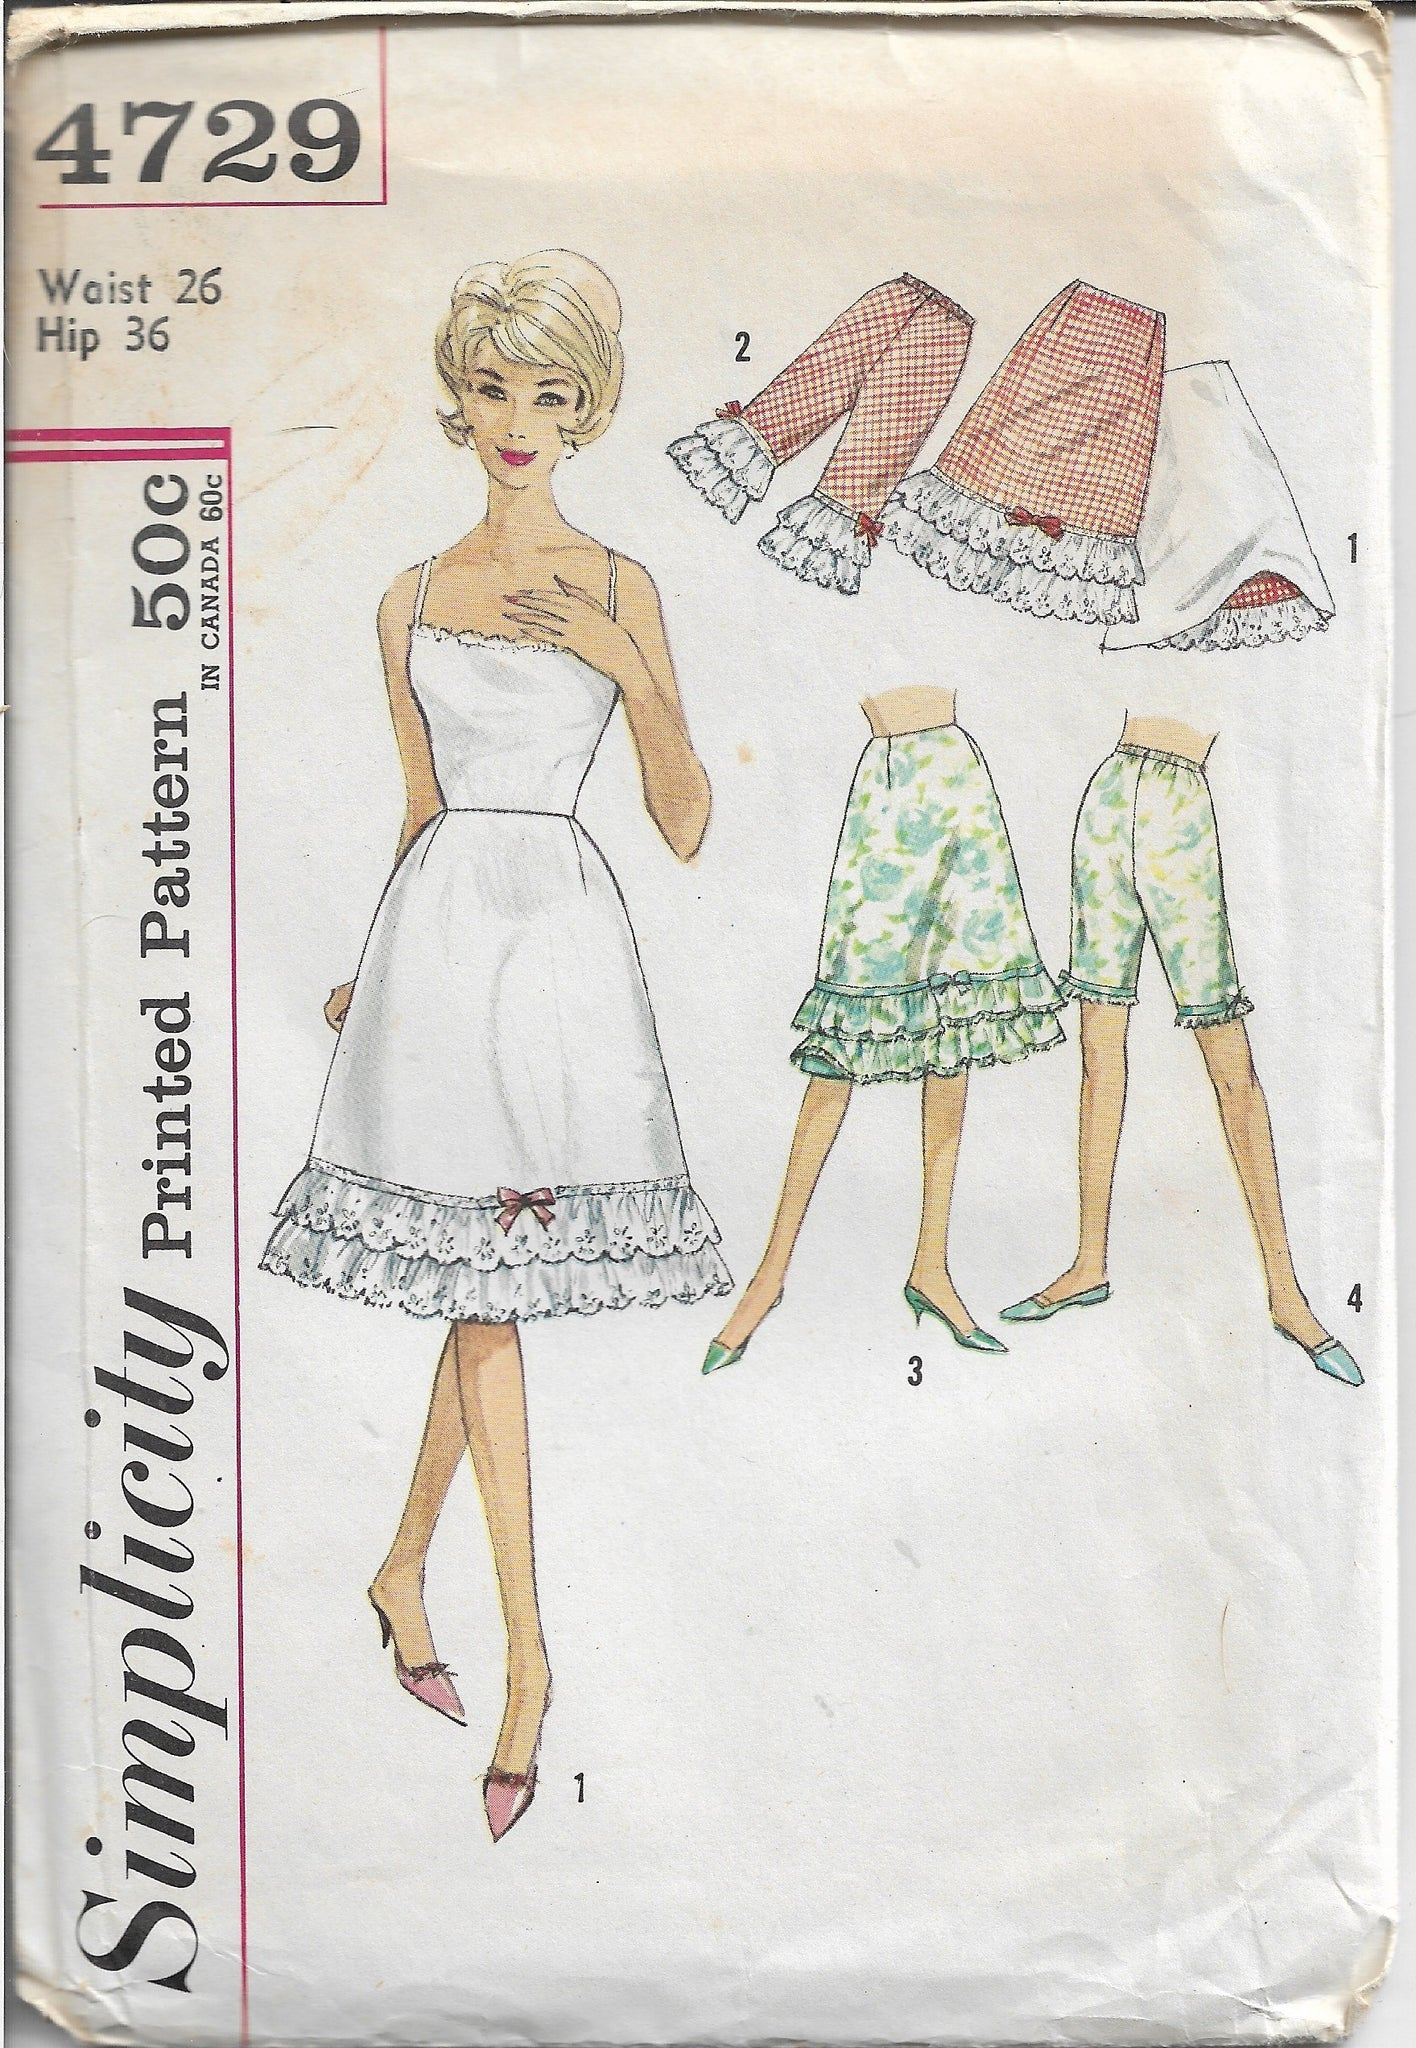 Simplicity 4729 Ladies Half Slip Pettipants Bloomers Vintage Sewing Pattern 1960s - VintageStitching - Vintage Sewing Patterns